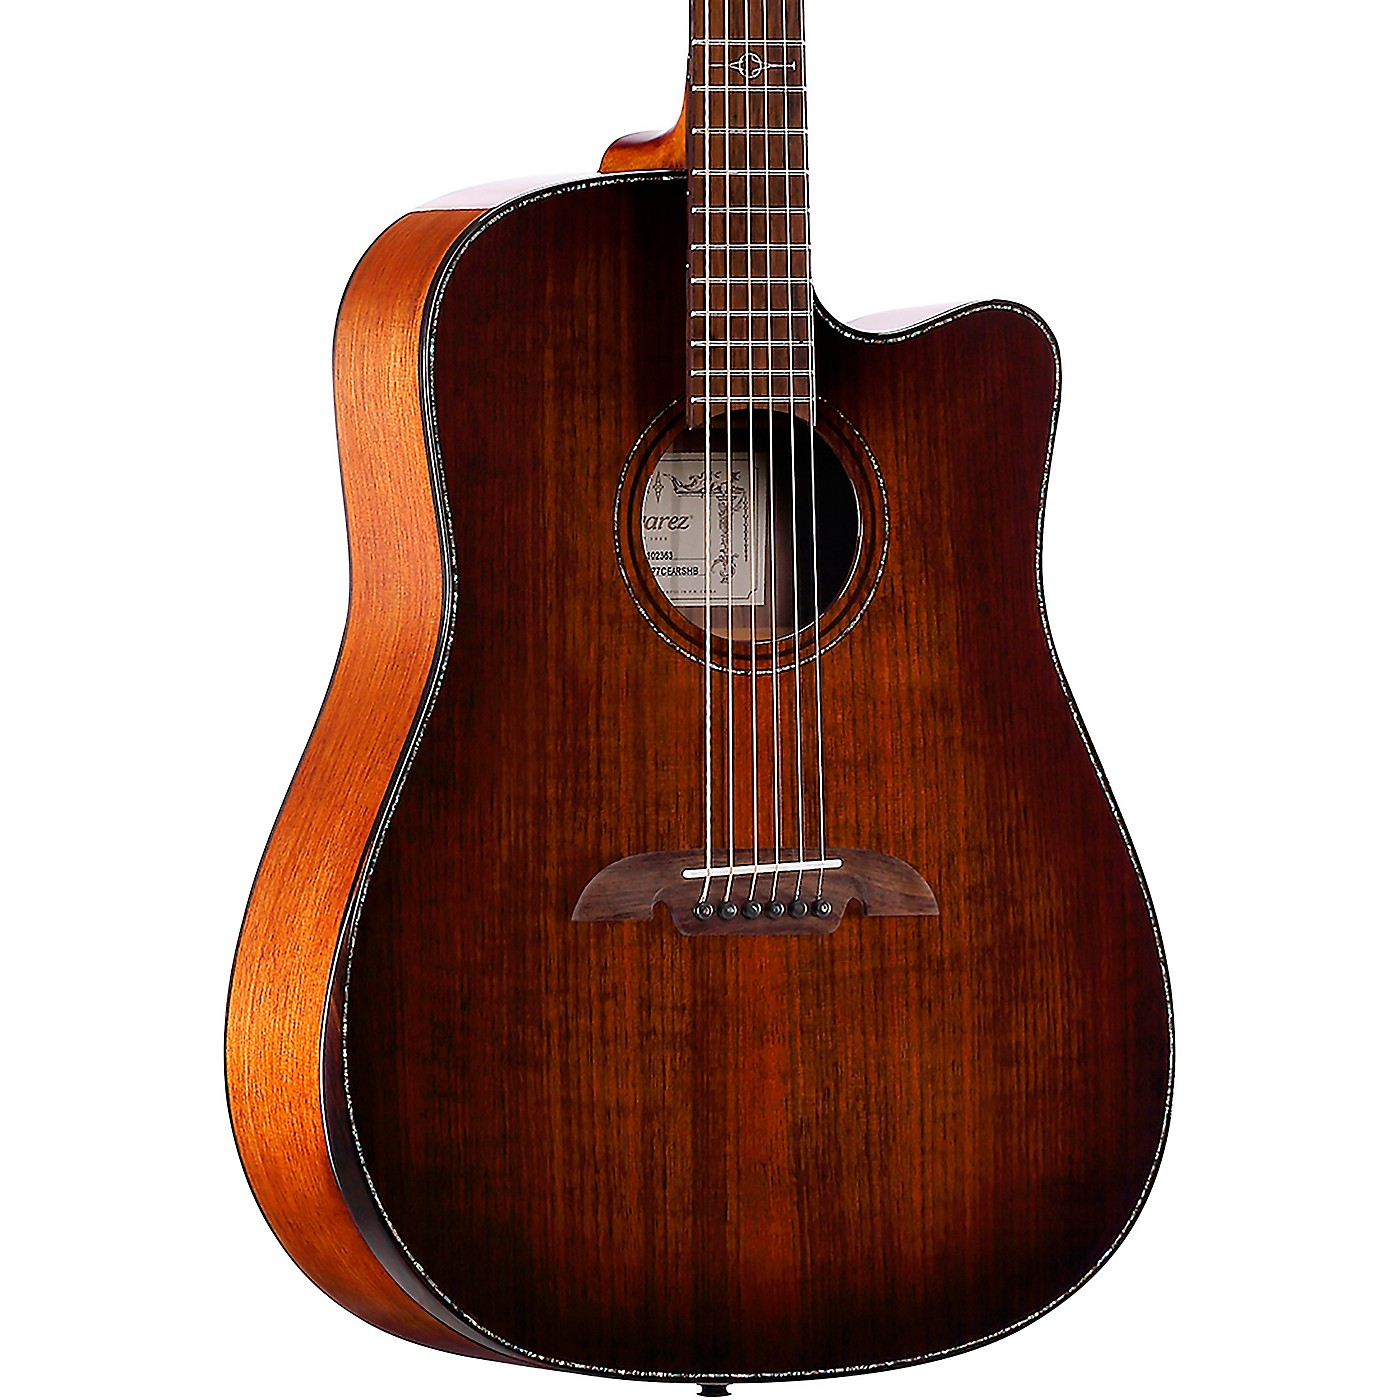 Alvarez MDA77CEAR Masterworks Dreadnought Acoustic-Electric Guitar thumbnail